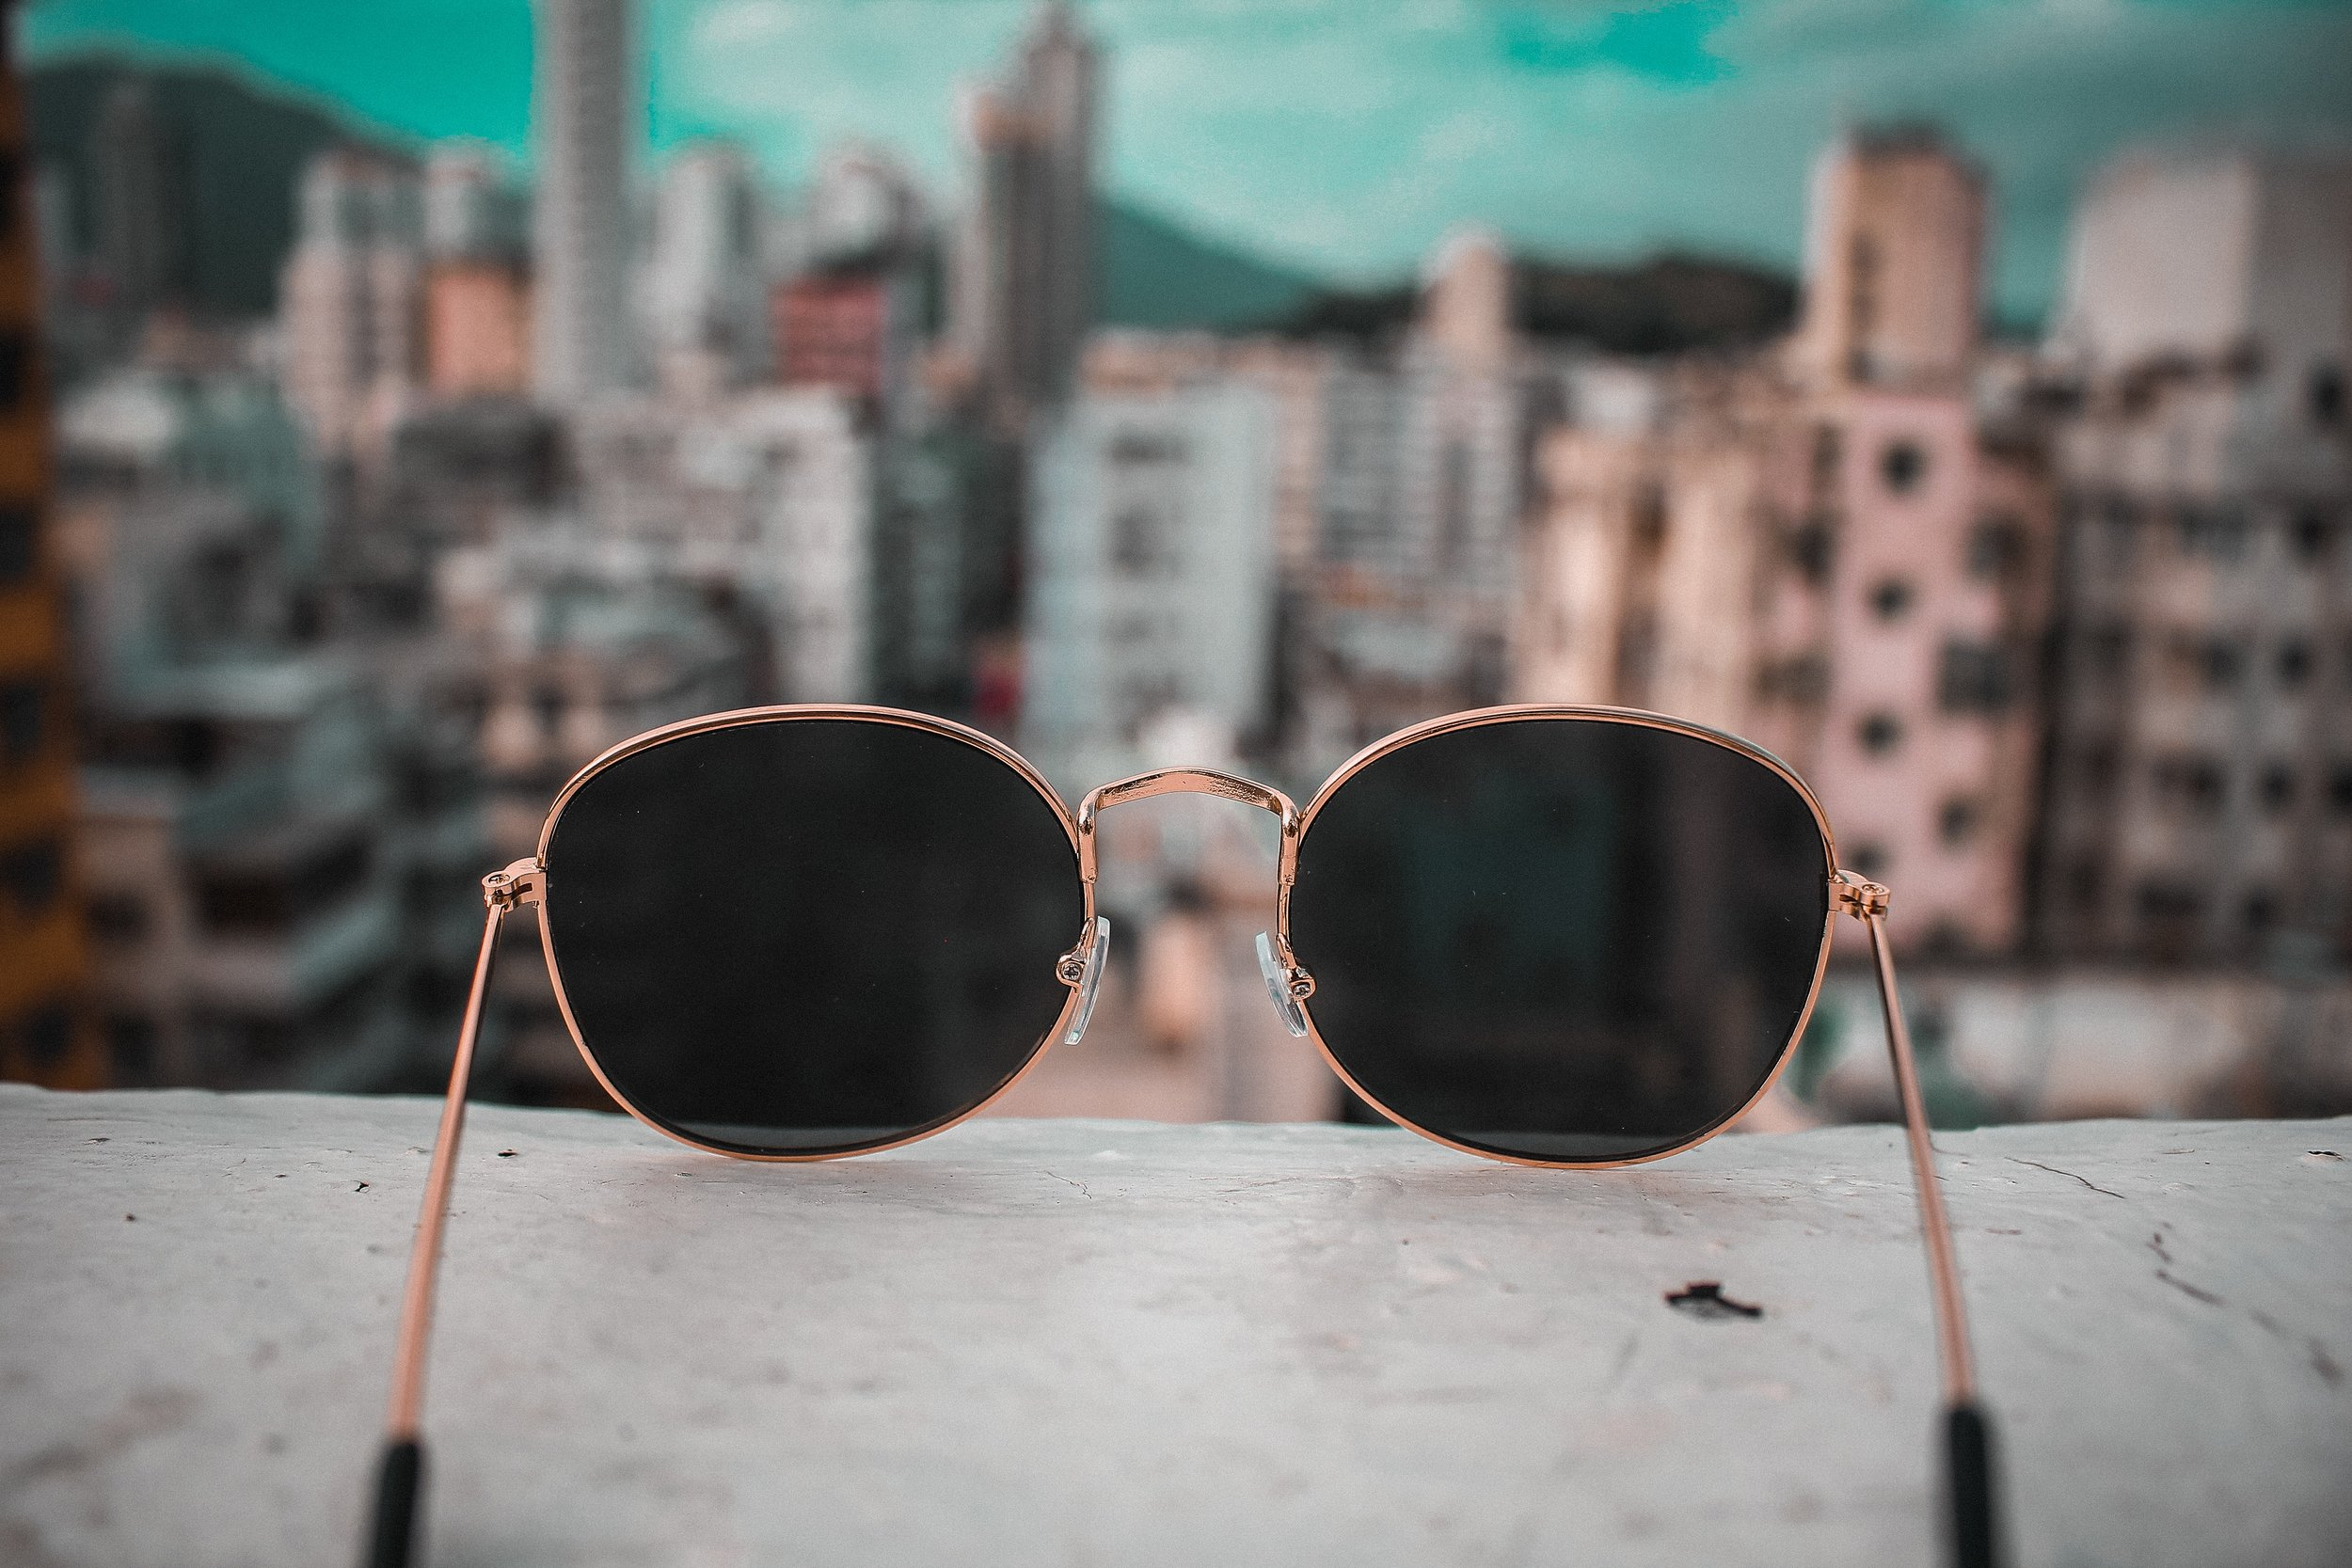 Sales & Operations Planning for a Global Eyewear Company